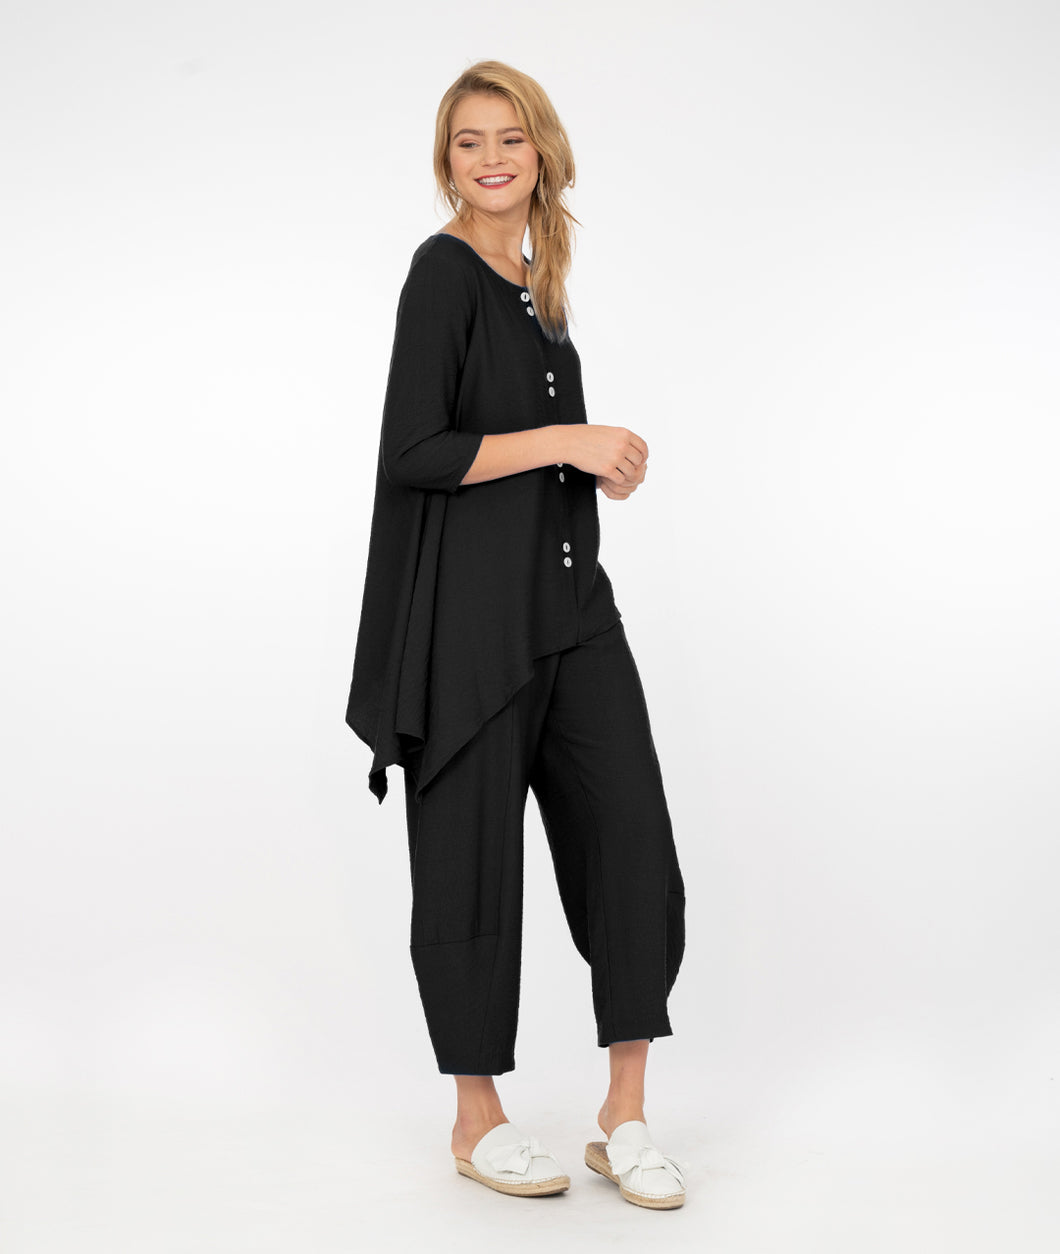 model in a black top with a draped hem line worn with a wide leg pant that tapers at the ankle